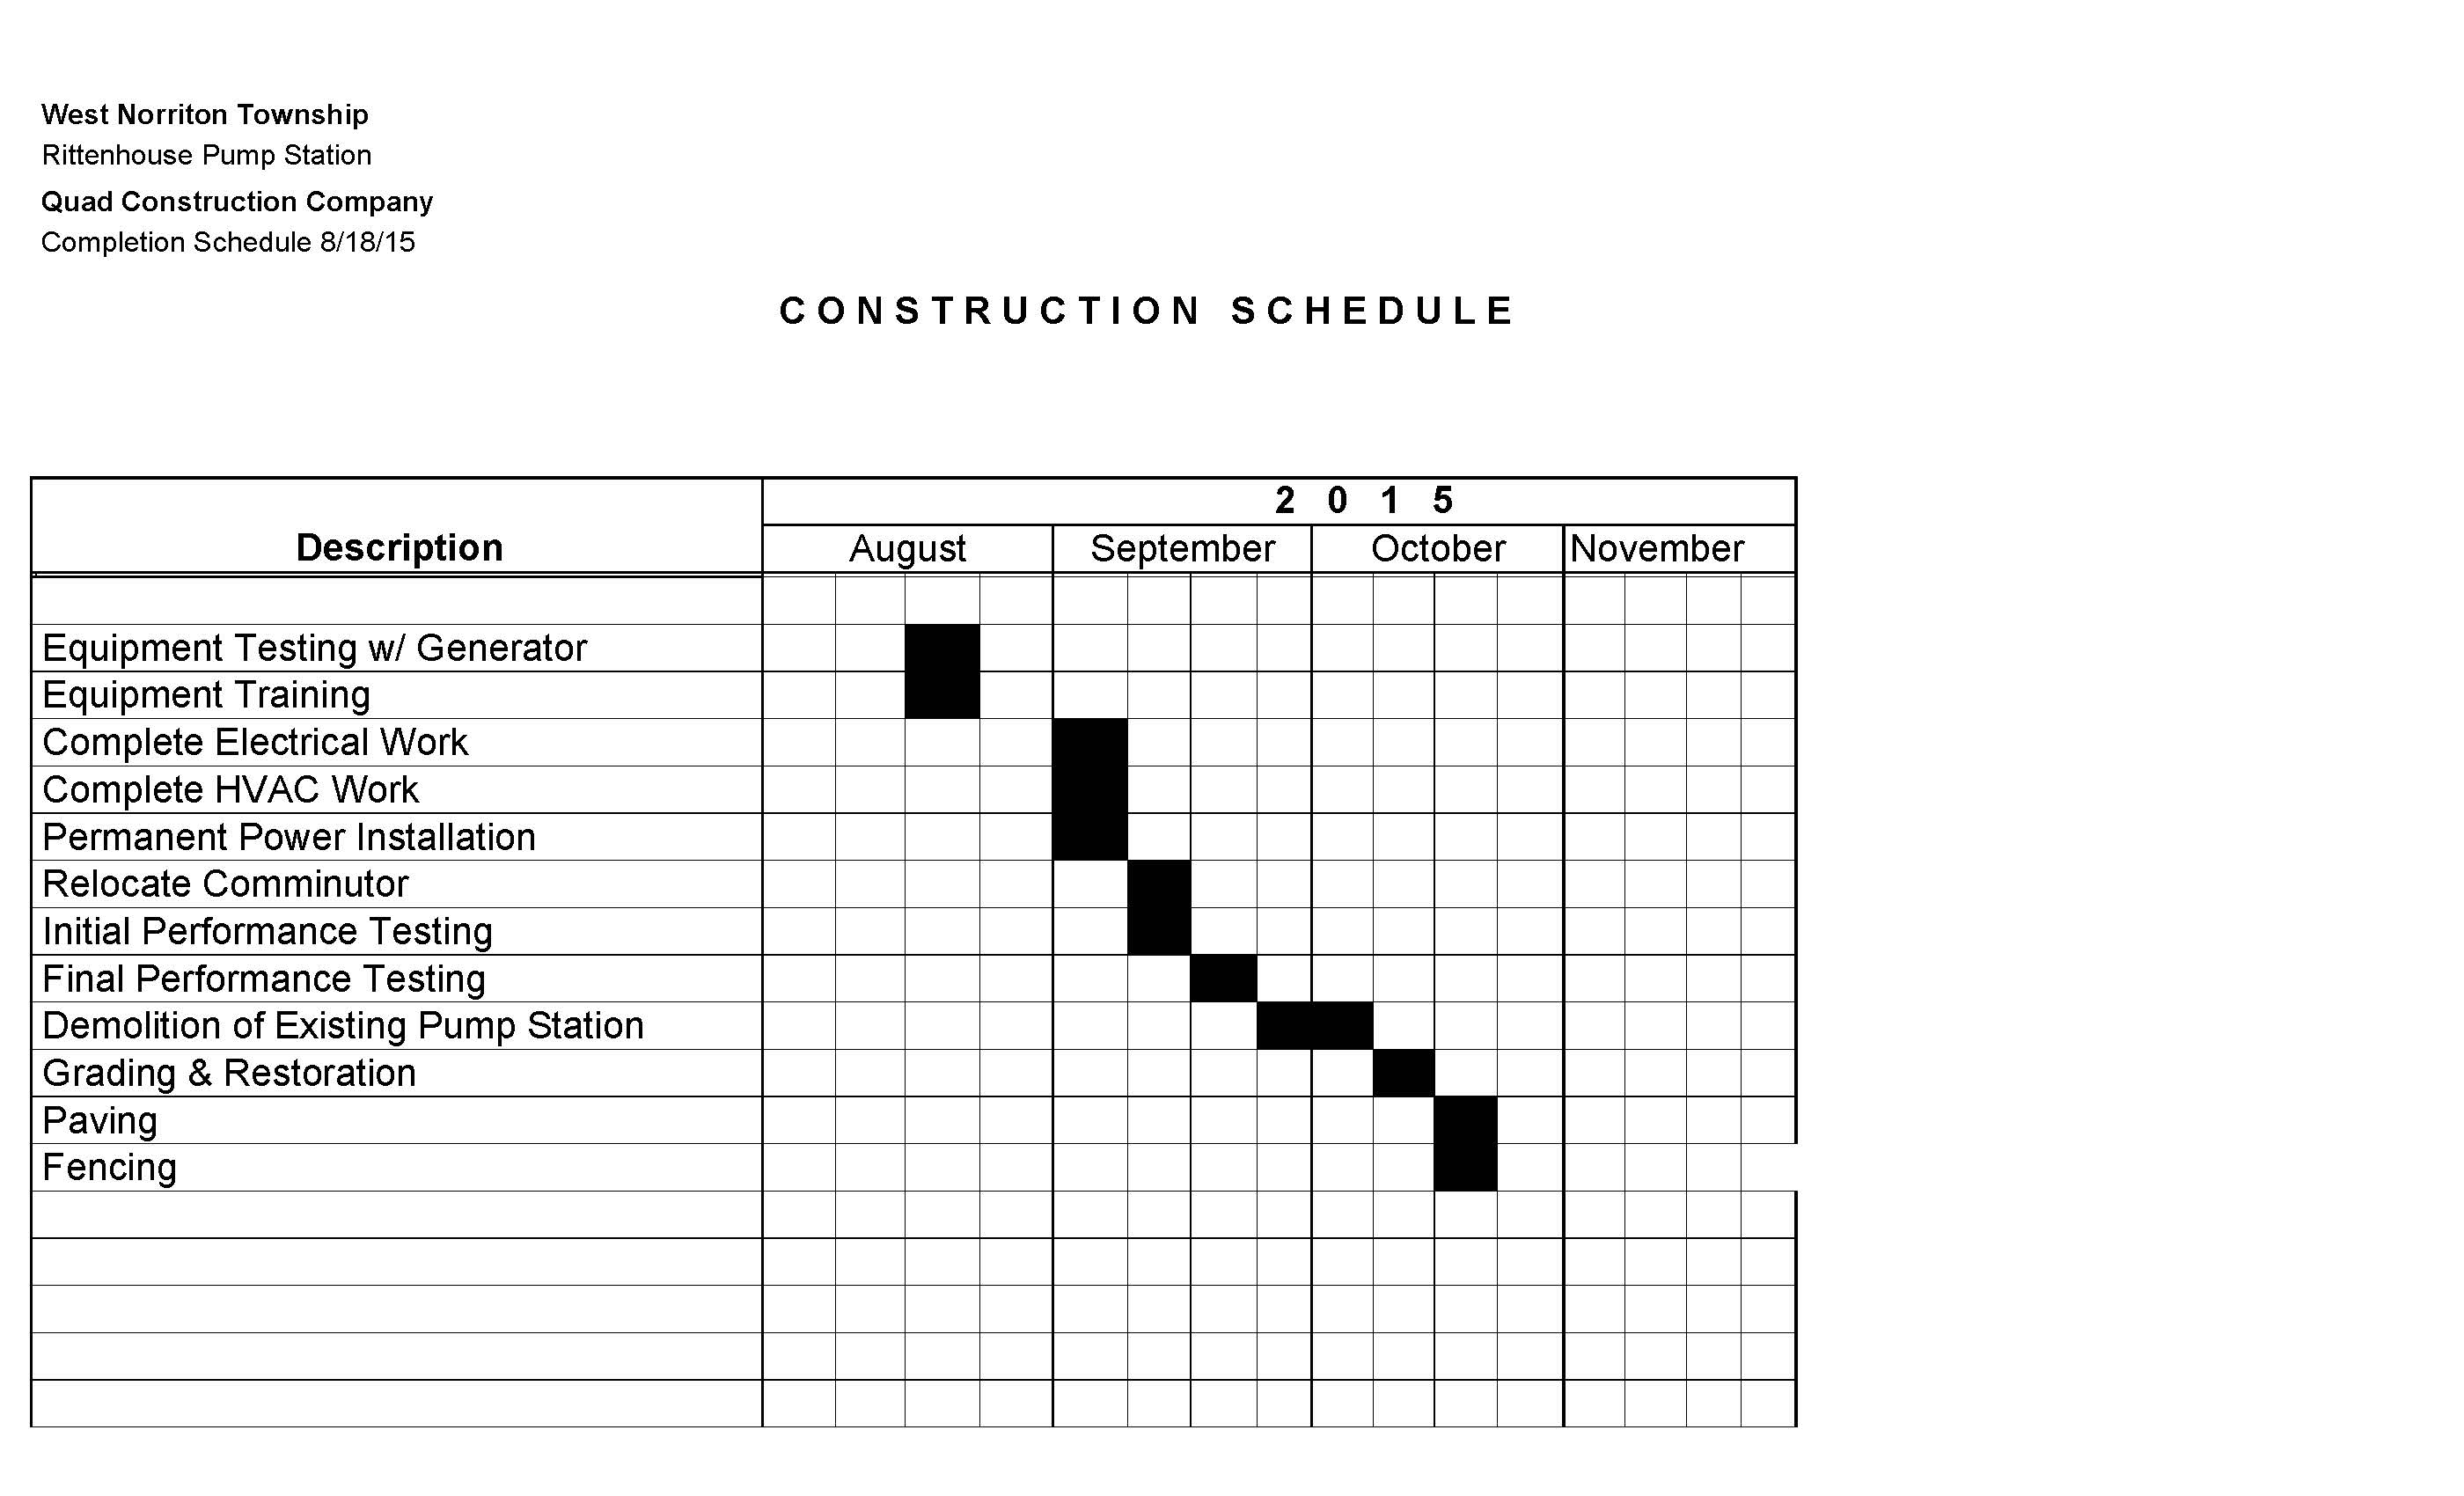 Copy of Completion Schedule